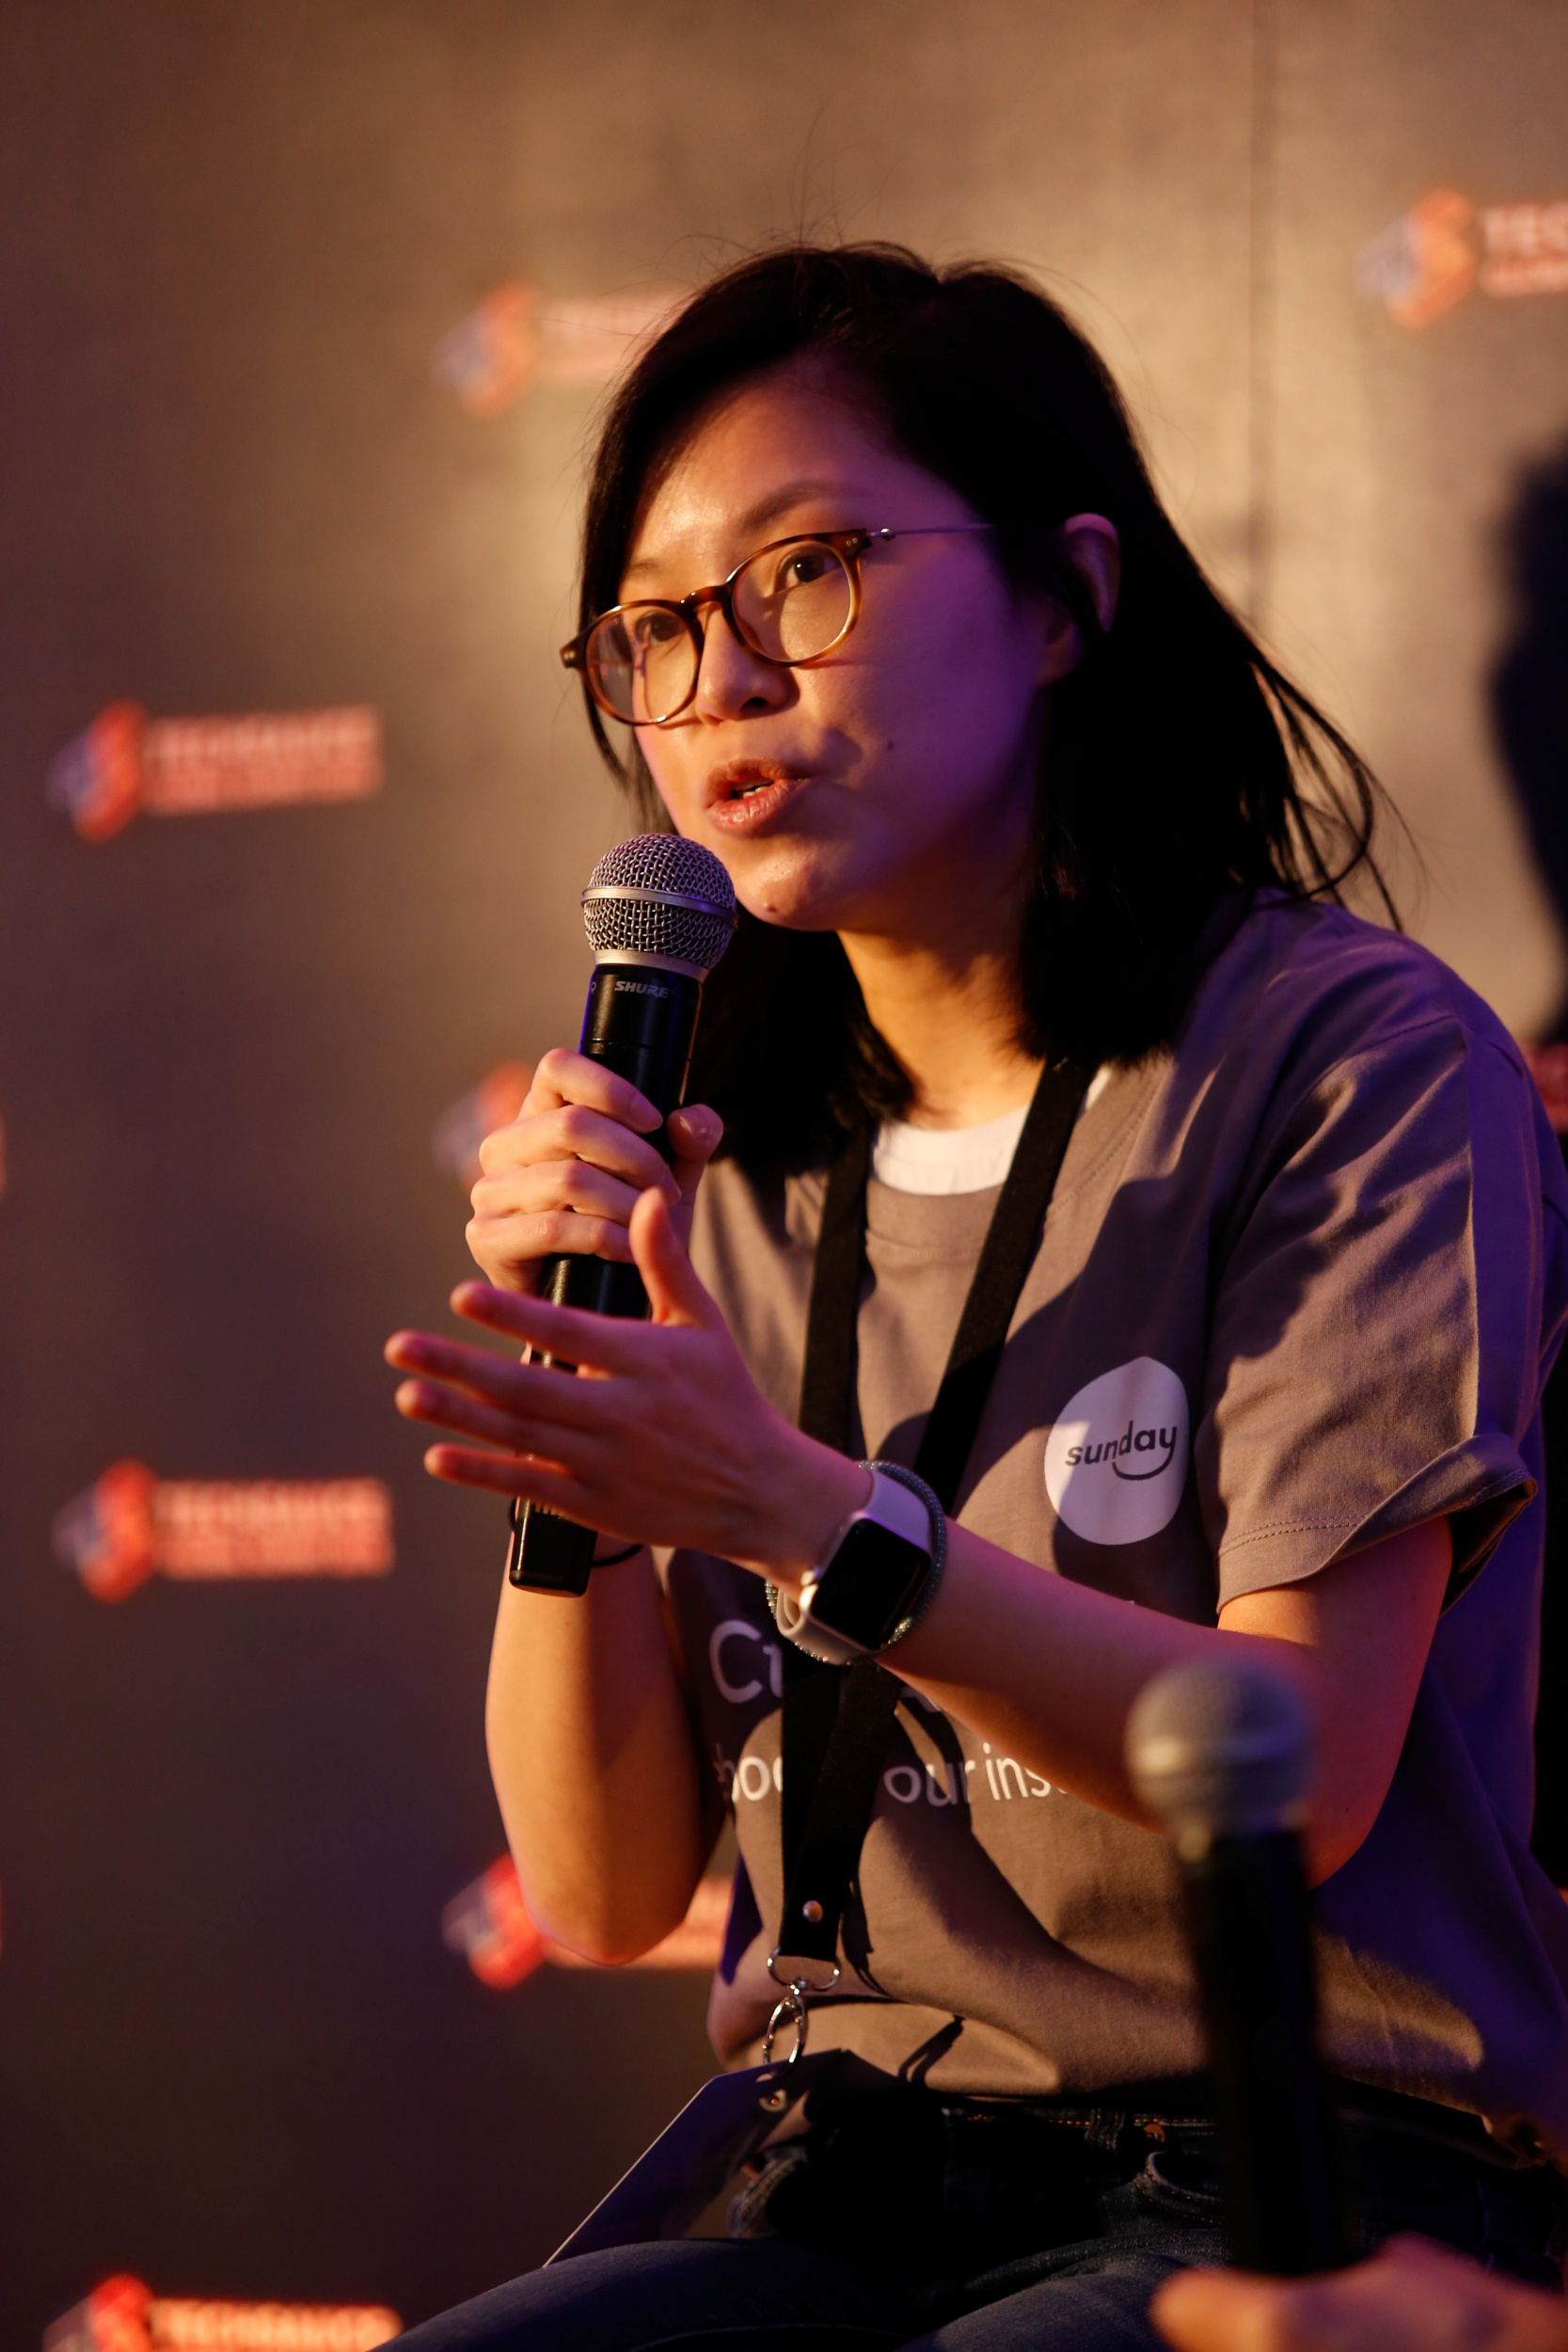 Cindy Kua, Sunday's CEO